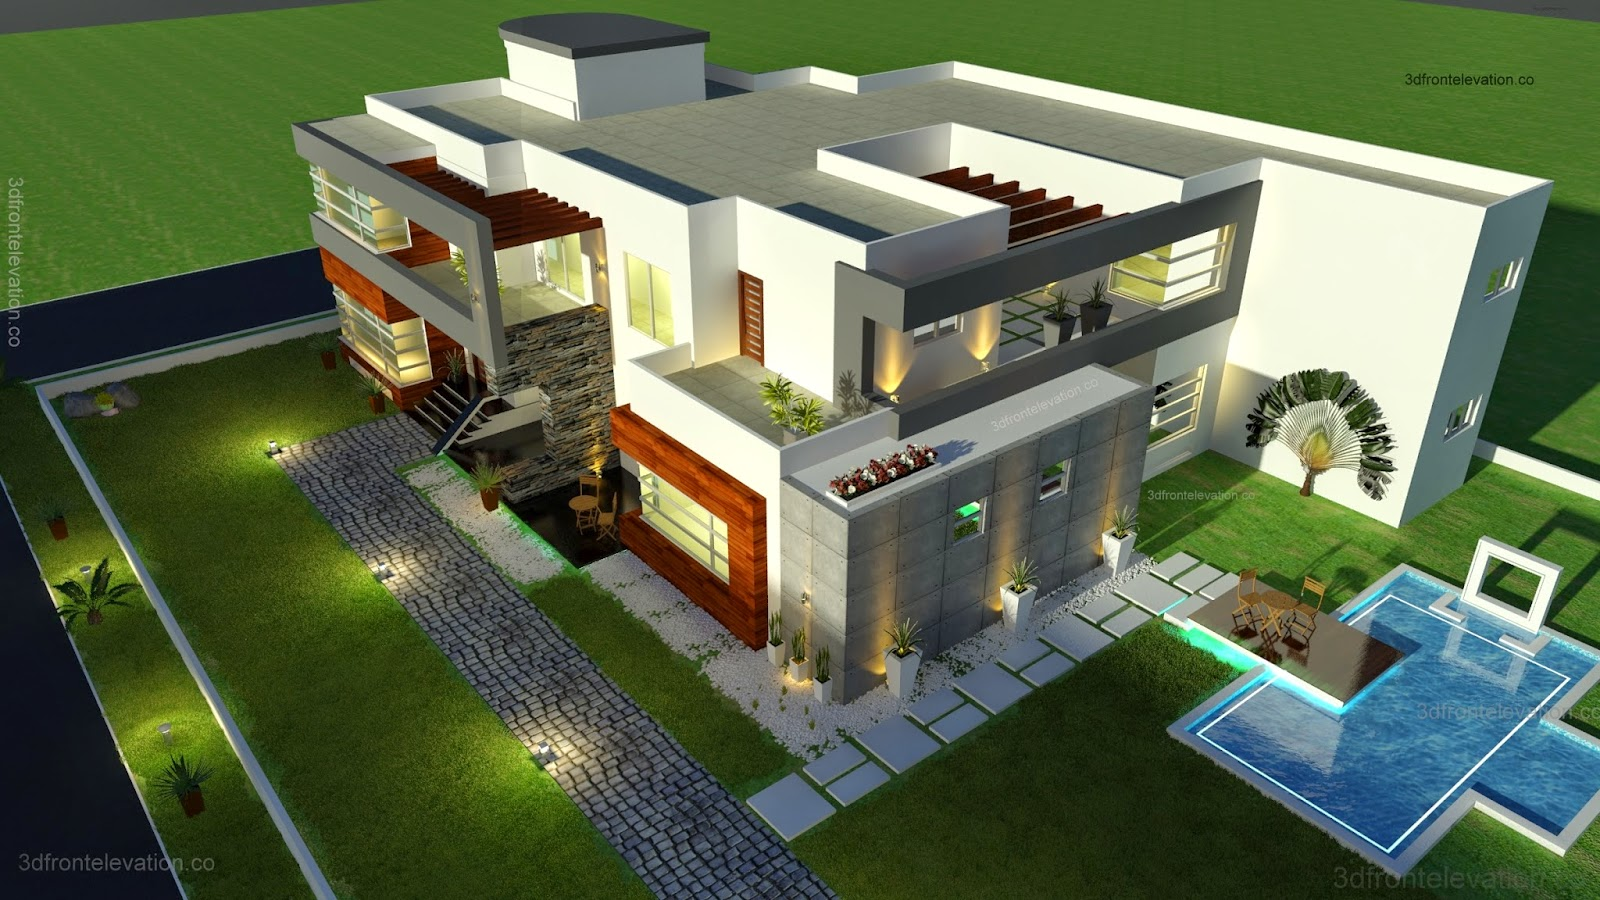 Do house plan,design,,3d front elevation architectural services by on villas kerala home designs, home extension designs, home house design, small residential building designs, architectural designs, modern raised house designs, home plans models, home elevator systems, modern duplex house plans designs, 10 marla home designs, indian modern house designs, home elevators prices list, american modern home designs, home range designs, historical front porch roof designs, home model designs, home elevators product, rock home designs, different home designs, outside home designs,